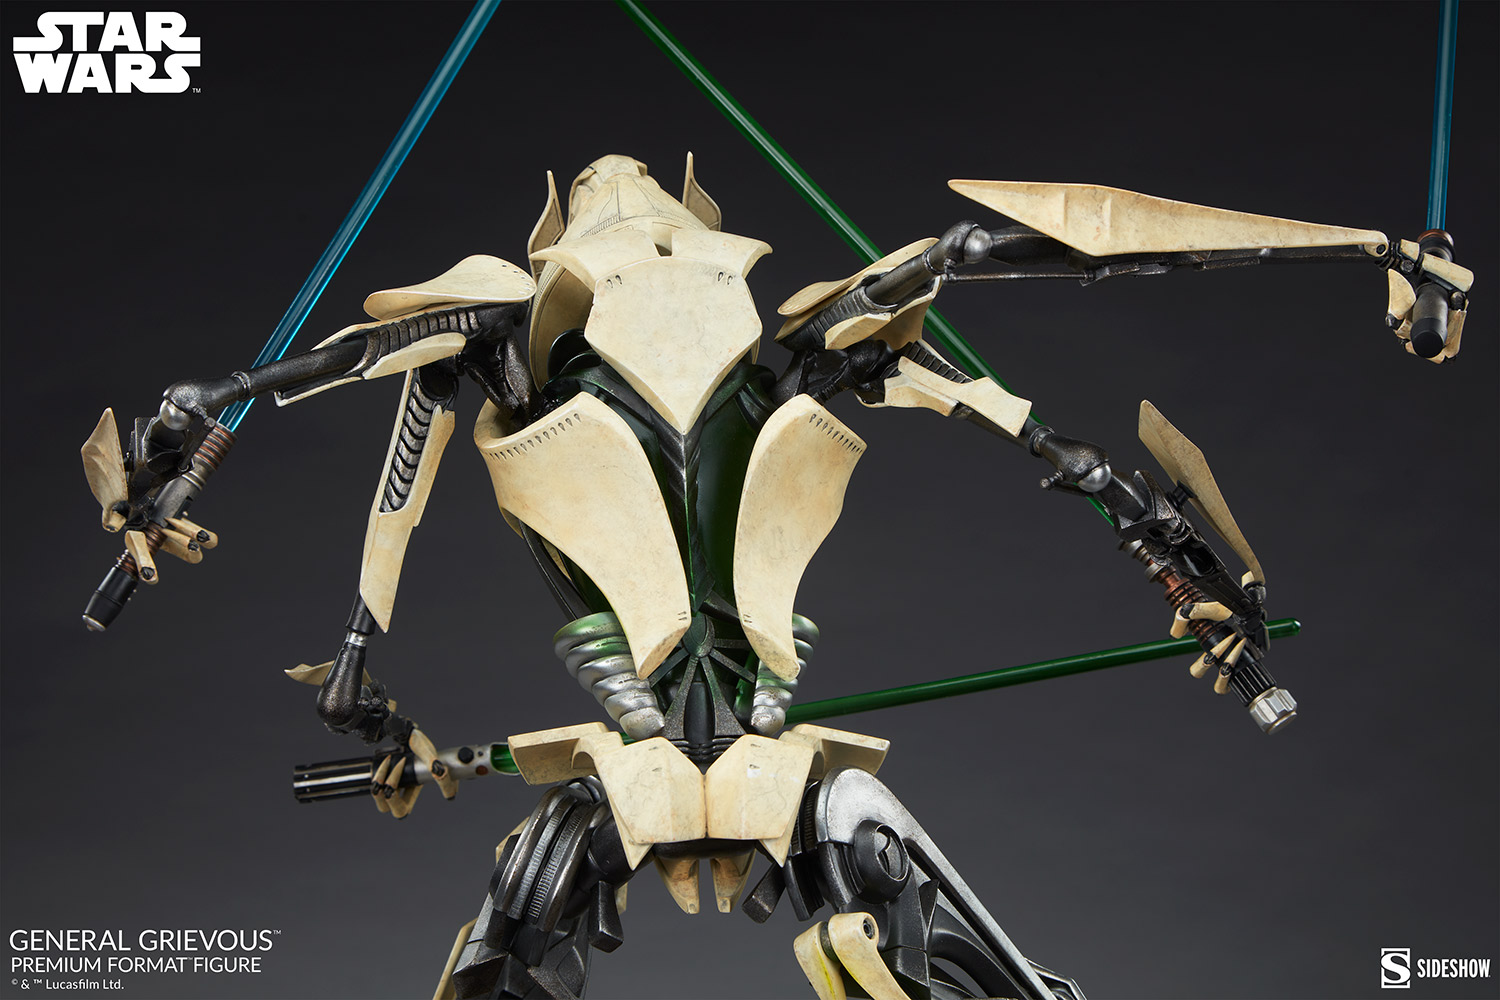 Star Wars: Revenge of the Sith : General Grievous Premium Format Figure General-grievous_star-wars_gallery_6155e6847fa98